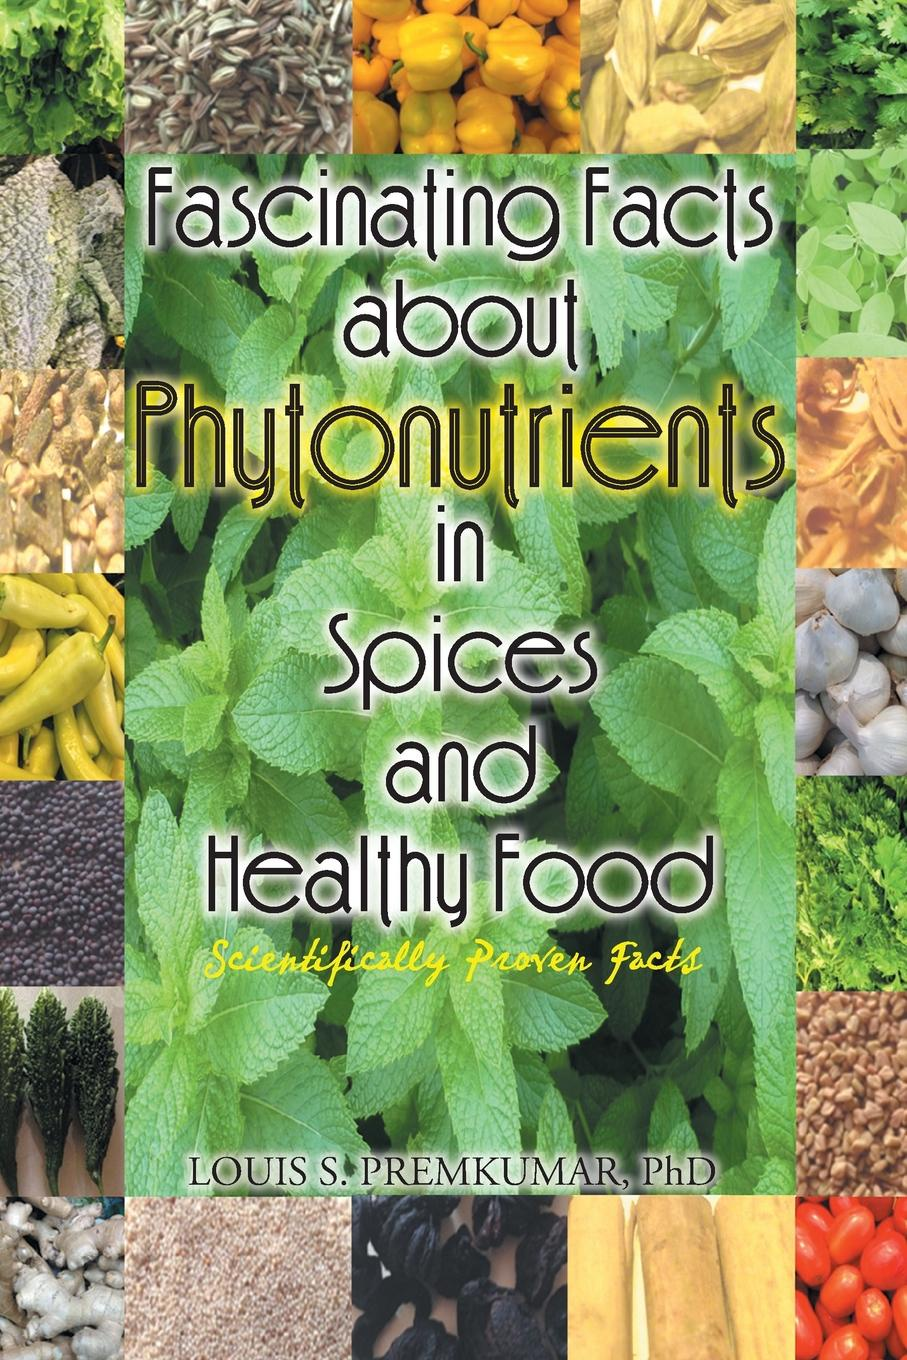 Phd Louis S. Premkumar Fascinating Facts about Phytonutrients in Spices and Healthy Food. Scientifically Proven Facts коллектив авторов food facts for the kitchen front